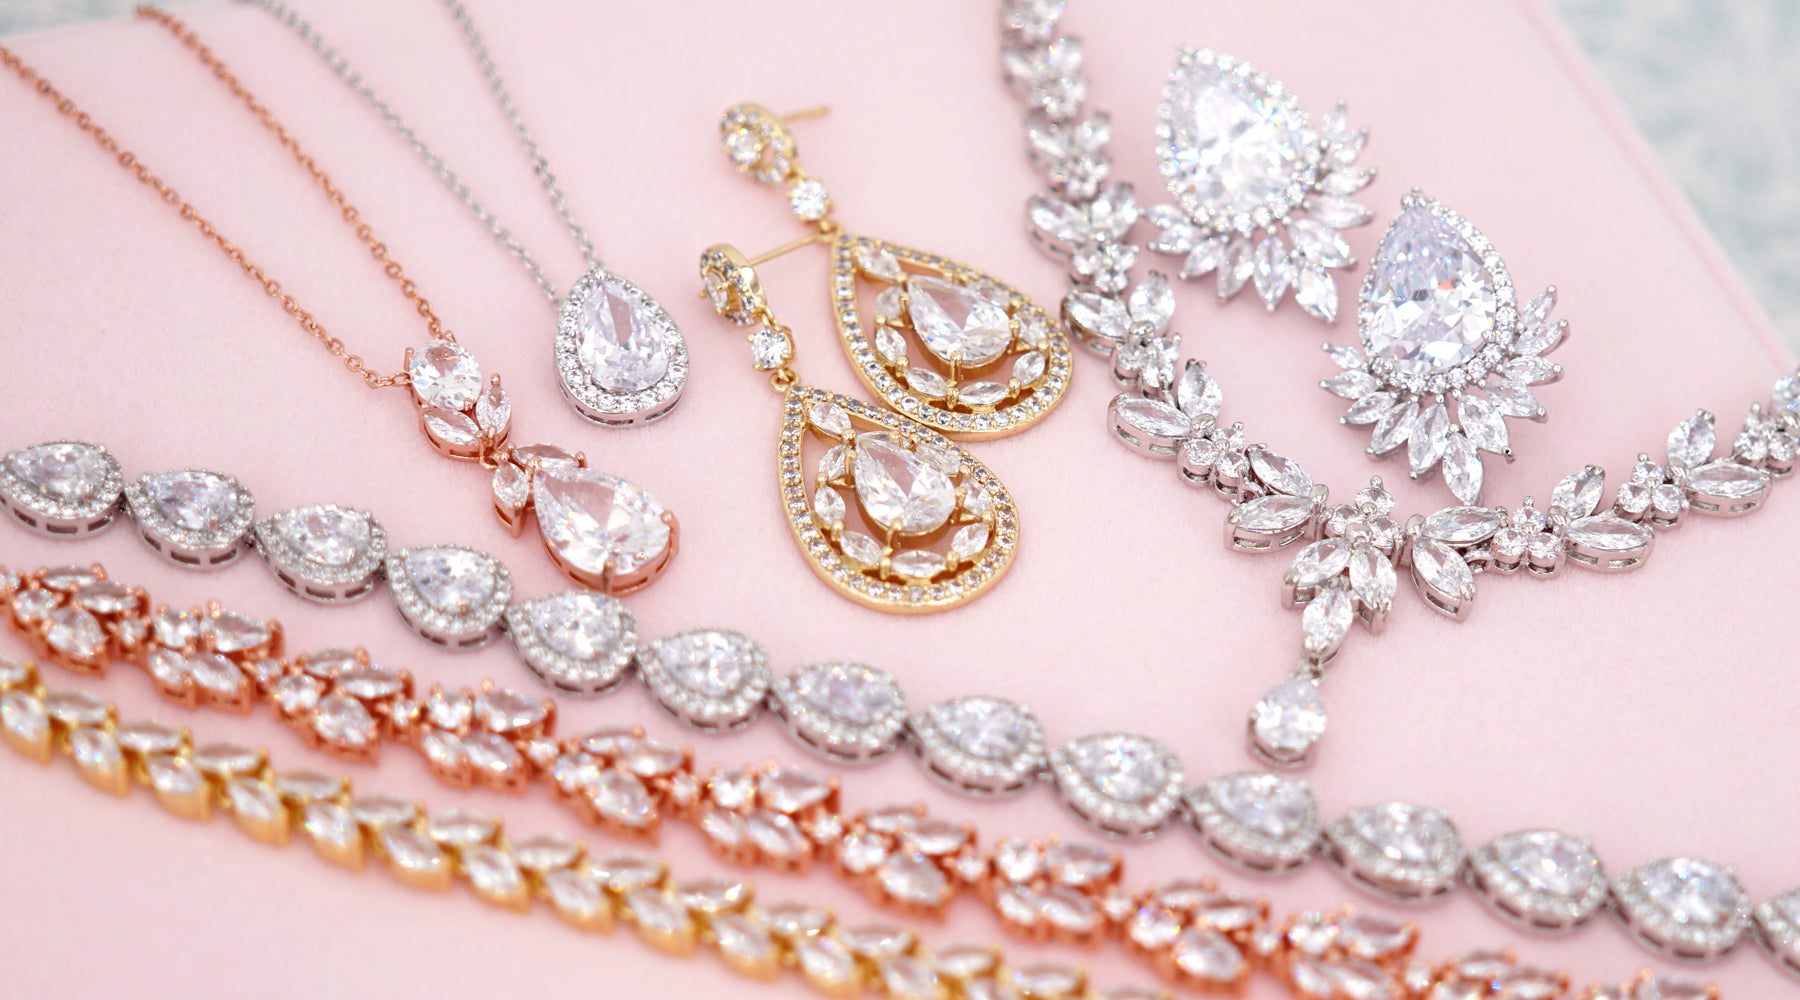 Glitz & Love | Wedding Jewelry for Brides and Bridesmaids | Bridal Shower Gifts | Timeless Elegant